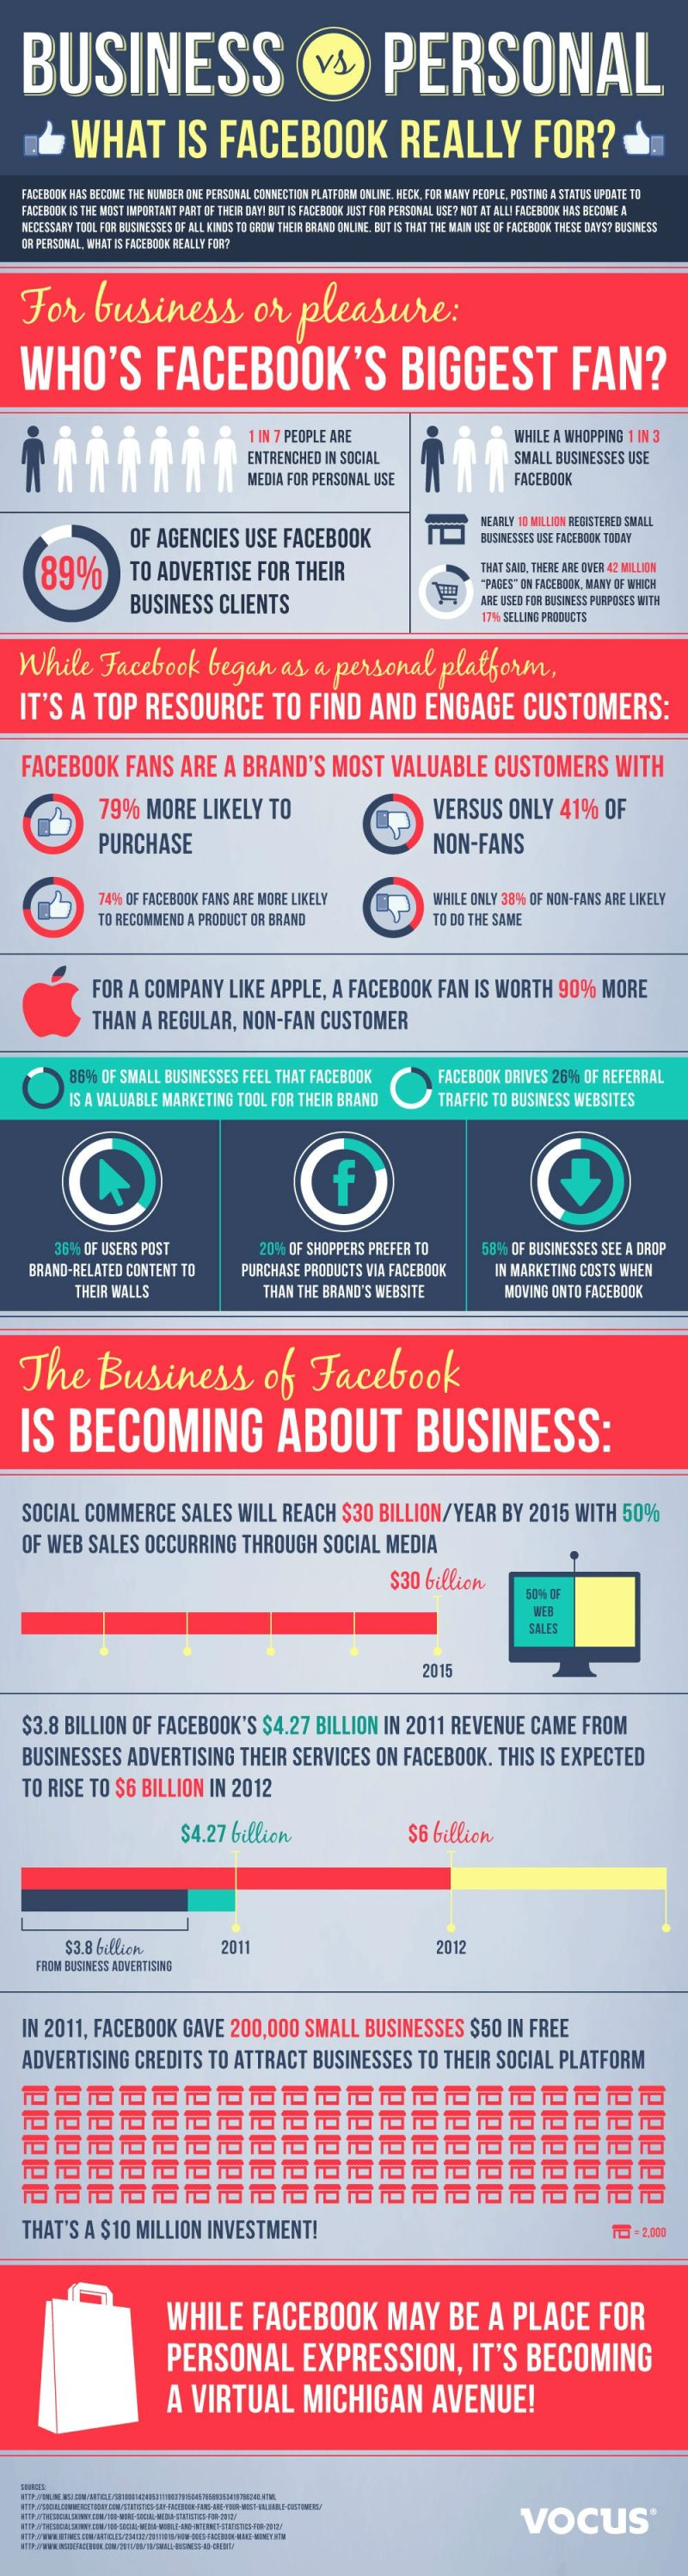 Infographic - Facebook For Business & Pleasure